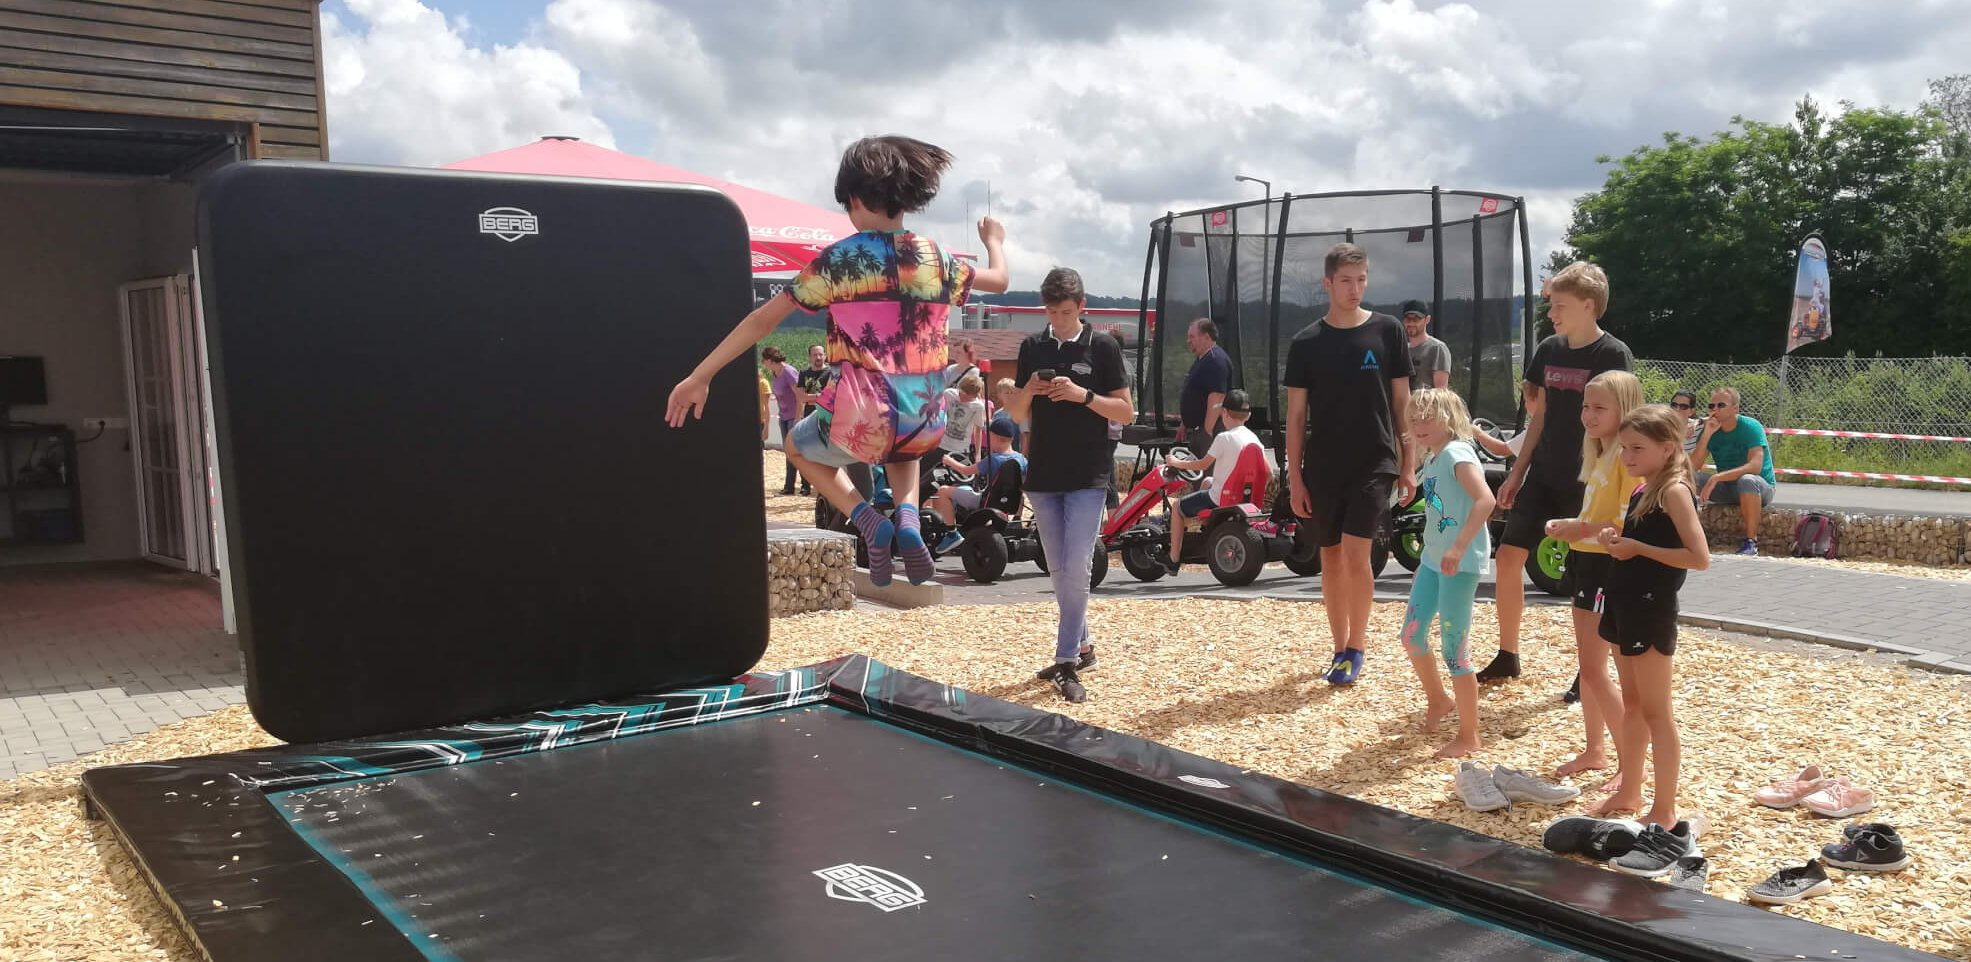 BERG Trampolin Ultim Elite Flatground 500 x 300 cm inkl. AeroWall - Highlight beim BERG Experience Day trampolin-profi.de